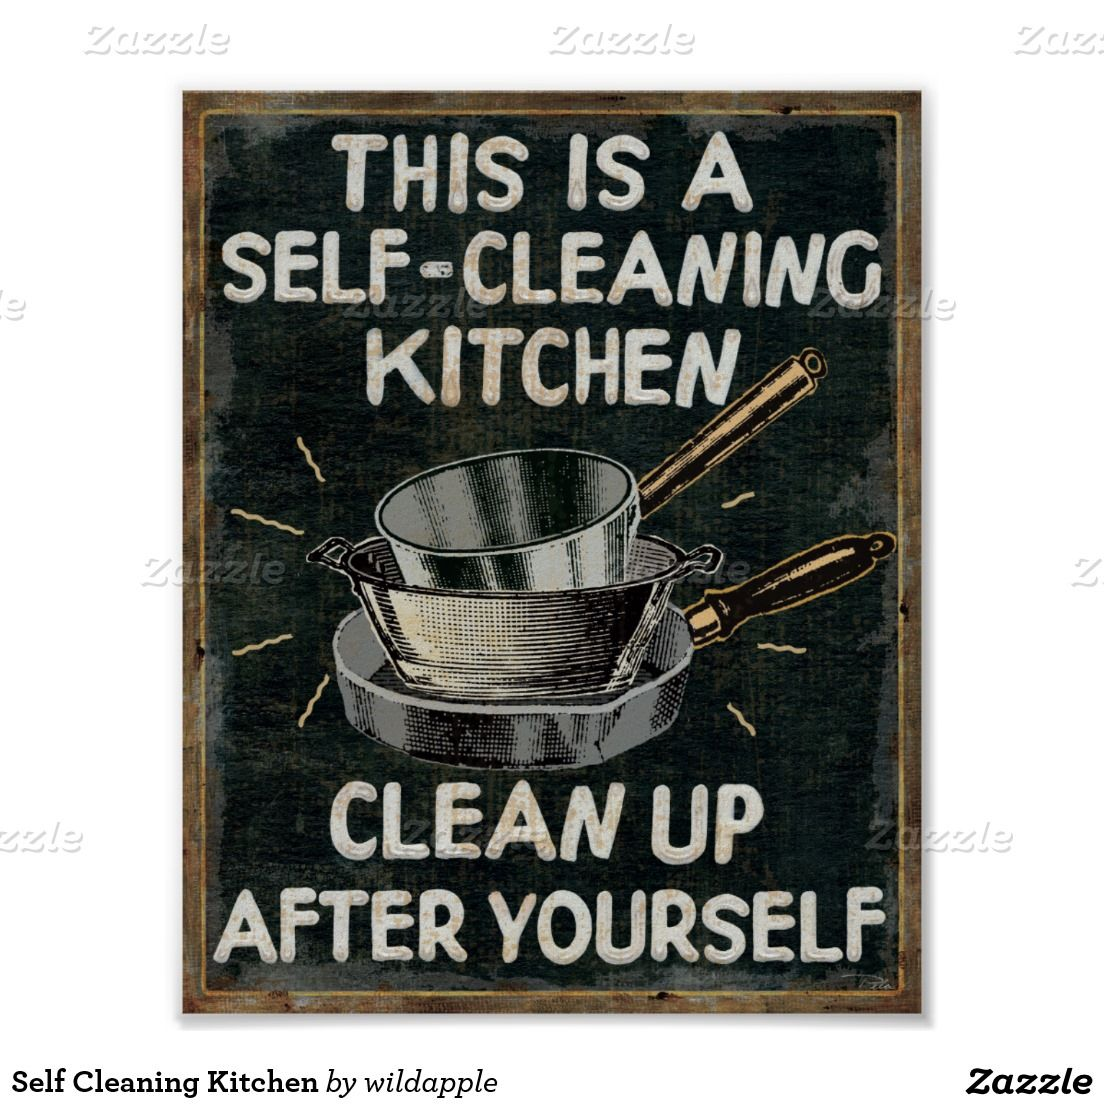 Self Cleaning Kitchen Poster Zazzle Com Kitchen Posters Clean Kitchen Kitchen Prints